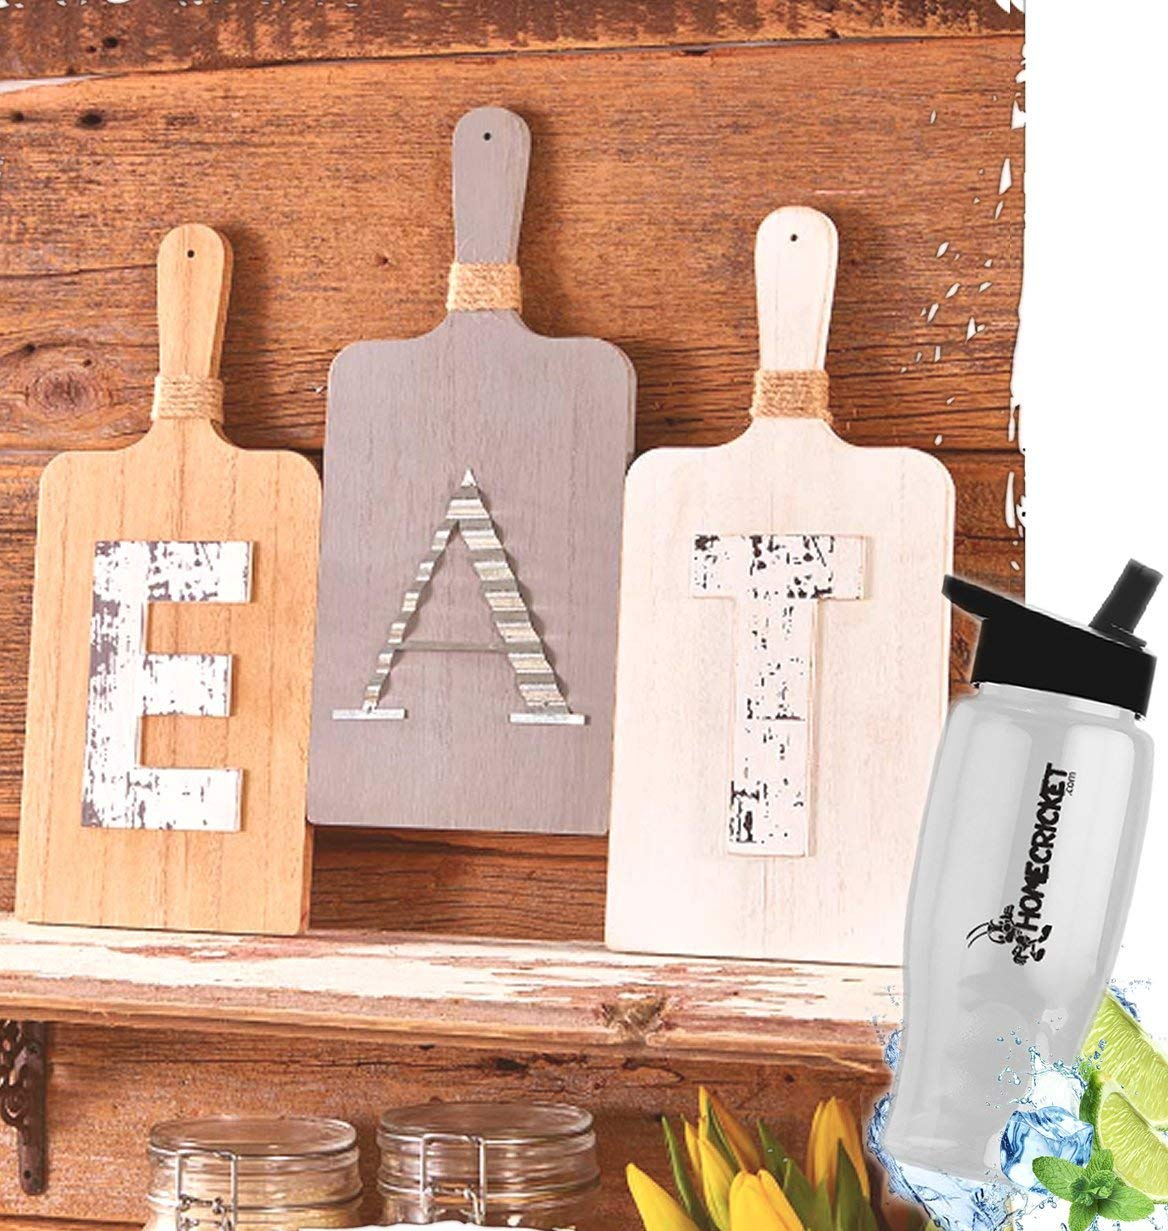 Buy Gift Included Country Farmhouse Kitchen Cutting Board Wall Display 3pc Eat Wall Hanging Decor Free Bonus Water Bottle By Home Cricket In Cheap Price On Alibaba Com